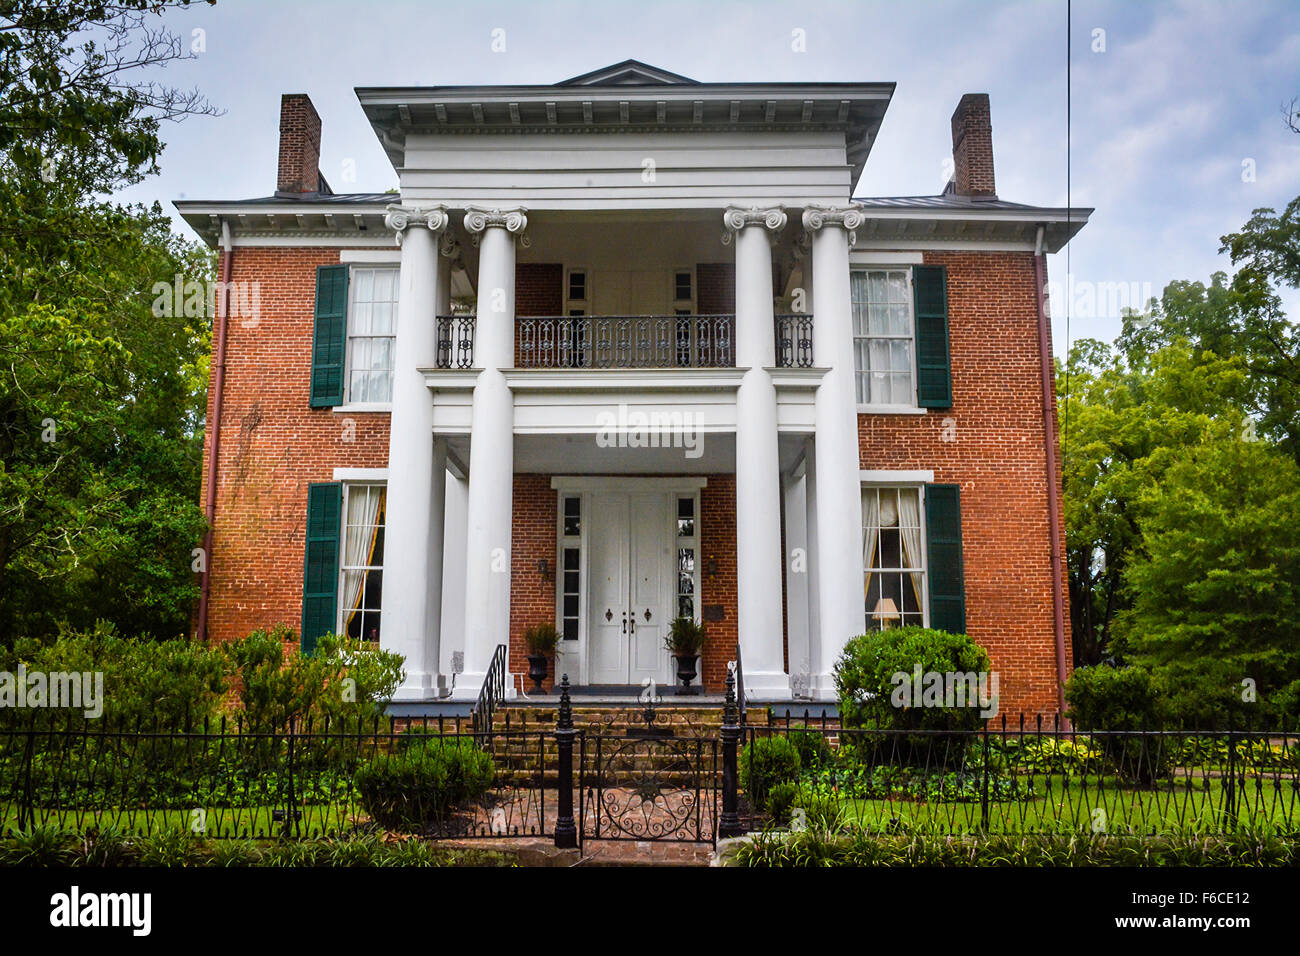 The 'Columns' an historically significant Greek Revival mansion used as hospital by Union Army during the - Stock Image